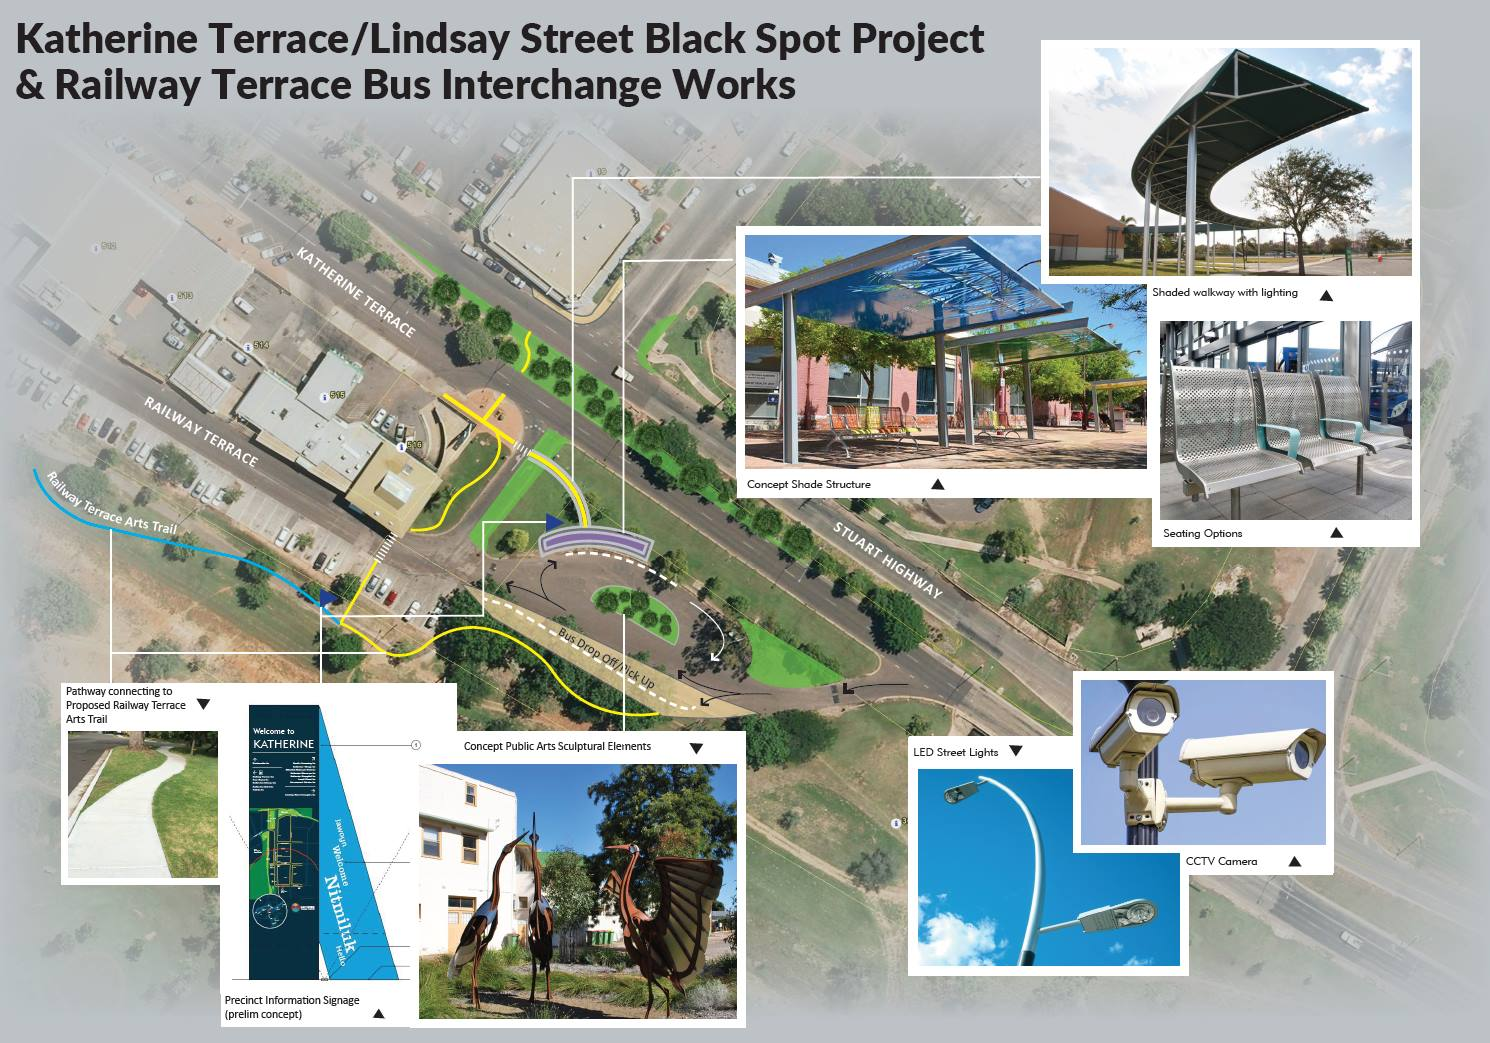 Consultation Open for Katherine Terrace/ Lindsay Street Intersection Safety Improvements